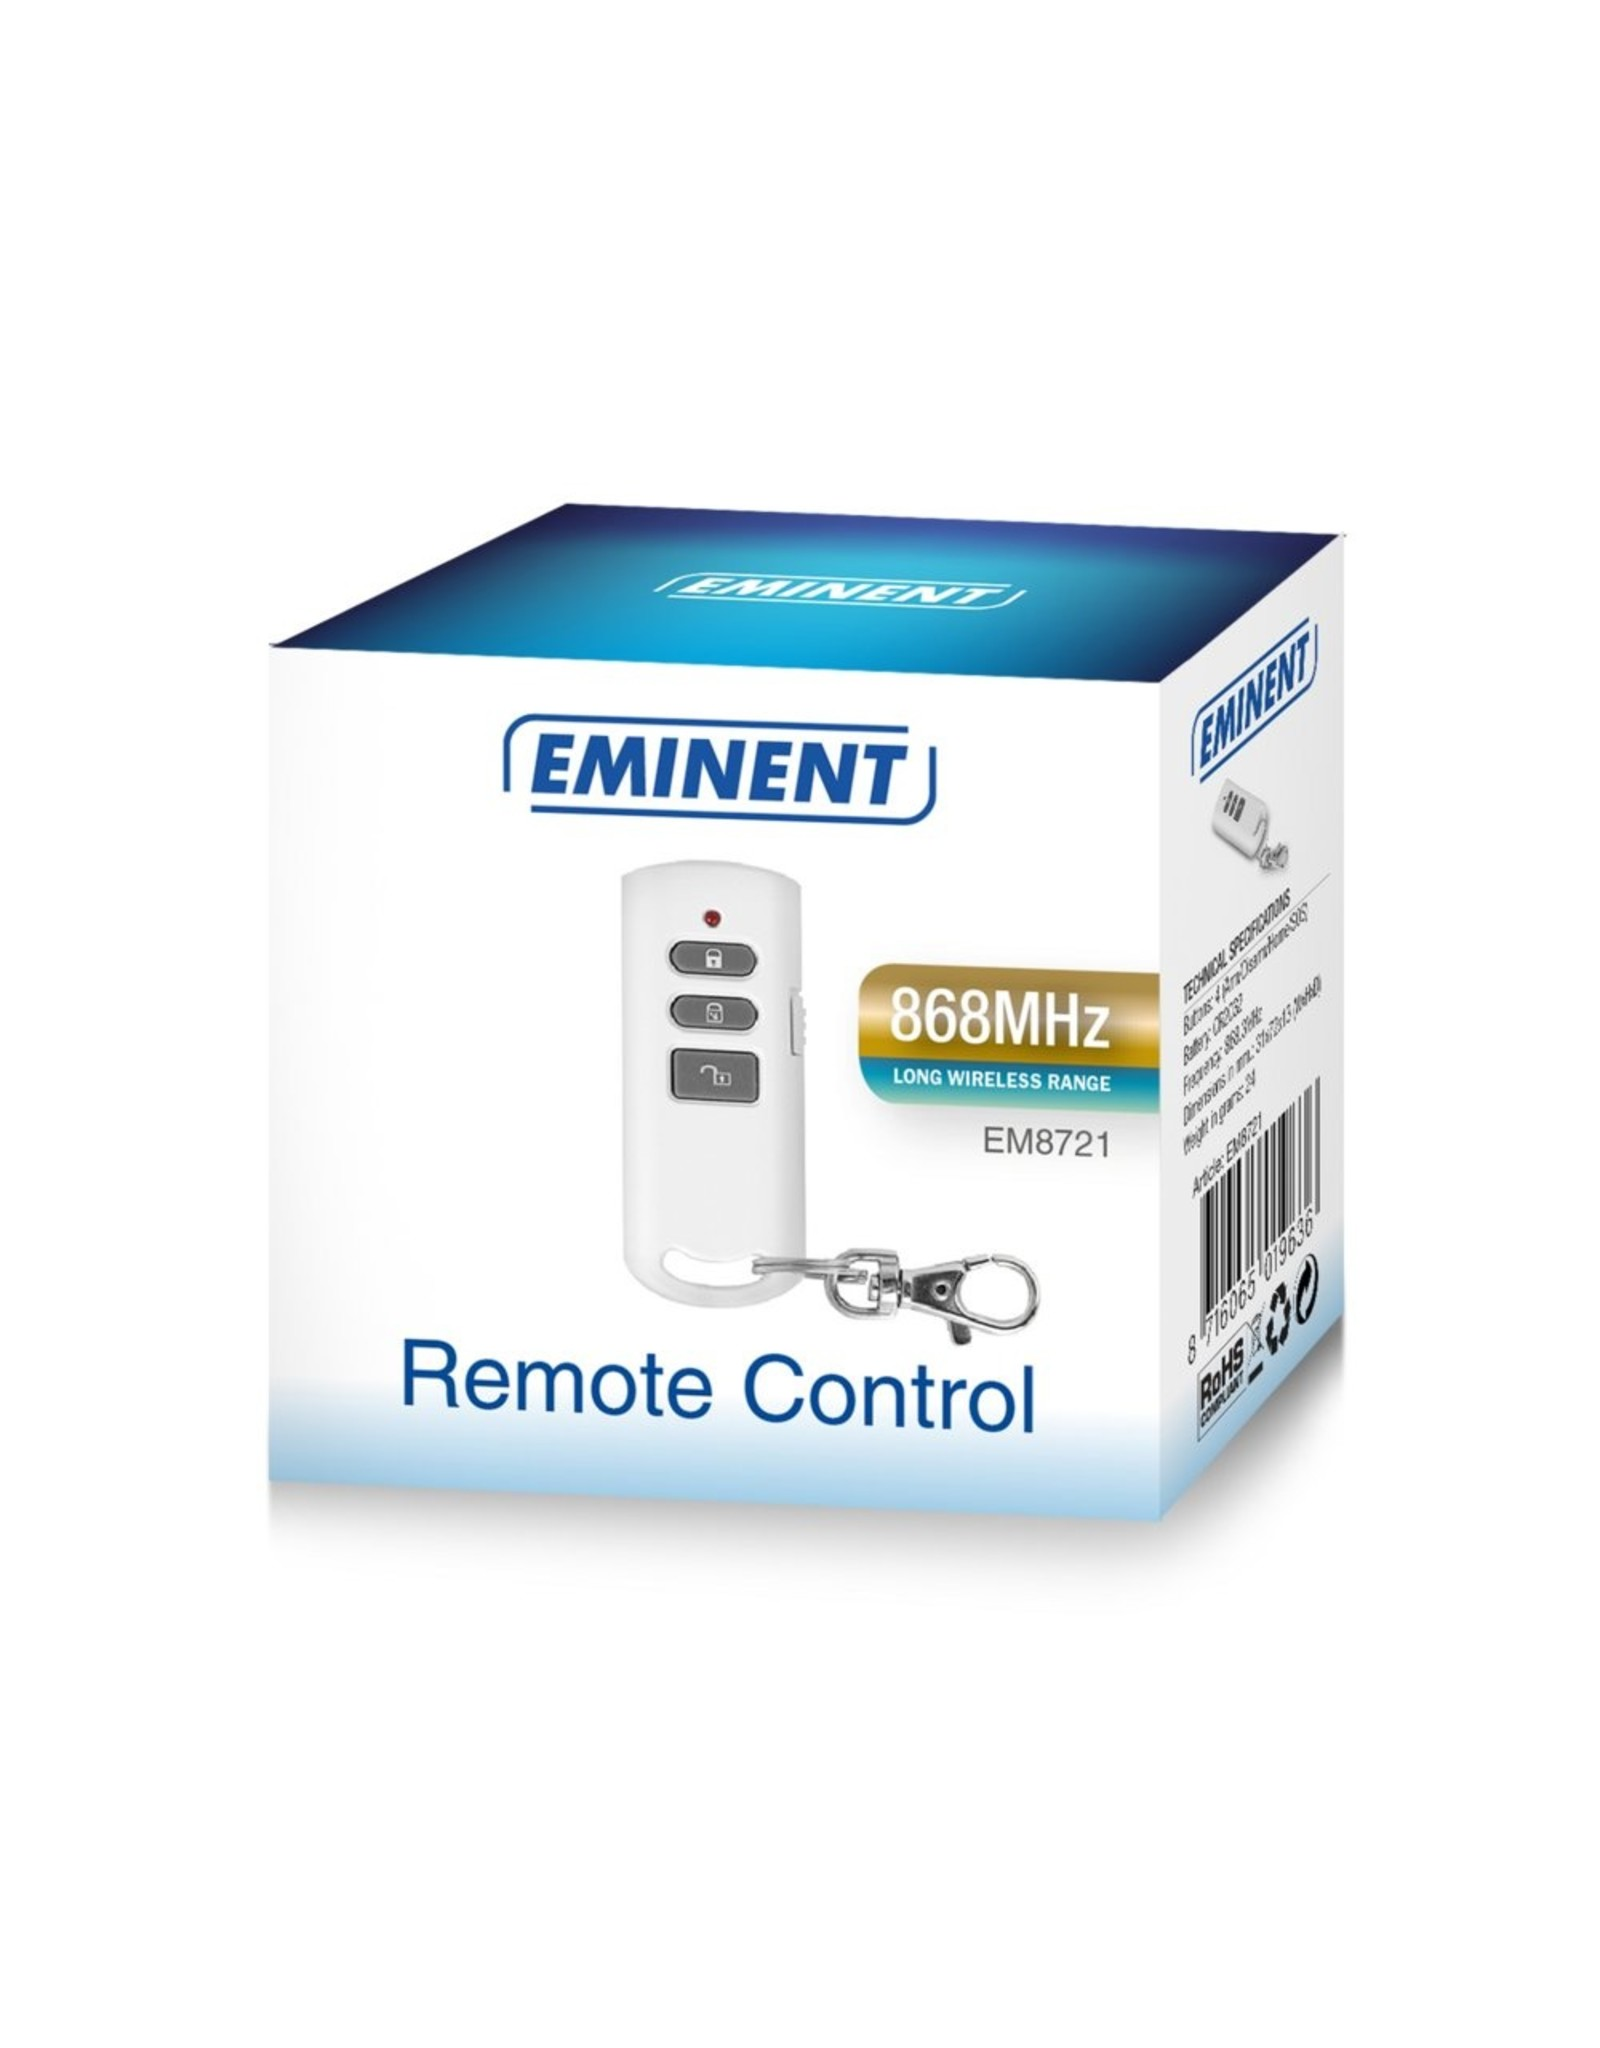 Eminent Remote control 868MHz wireless alarm system